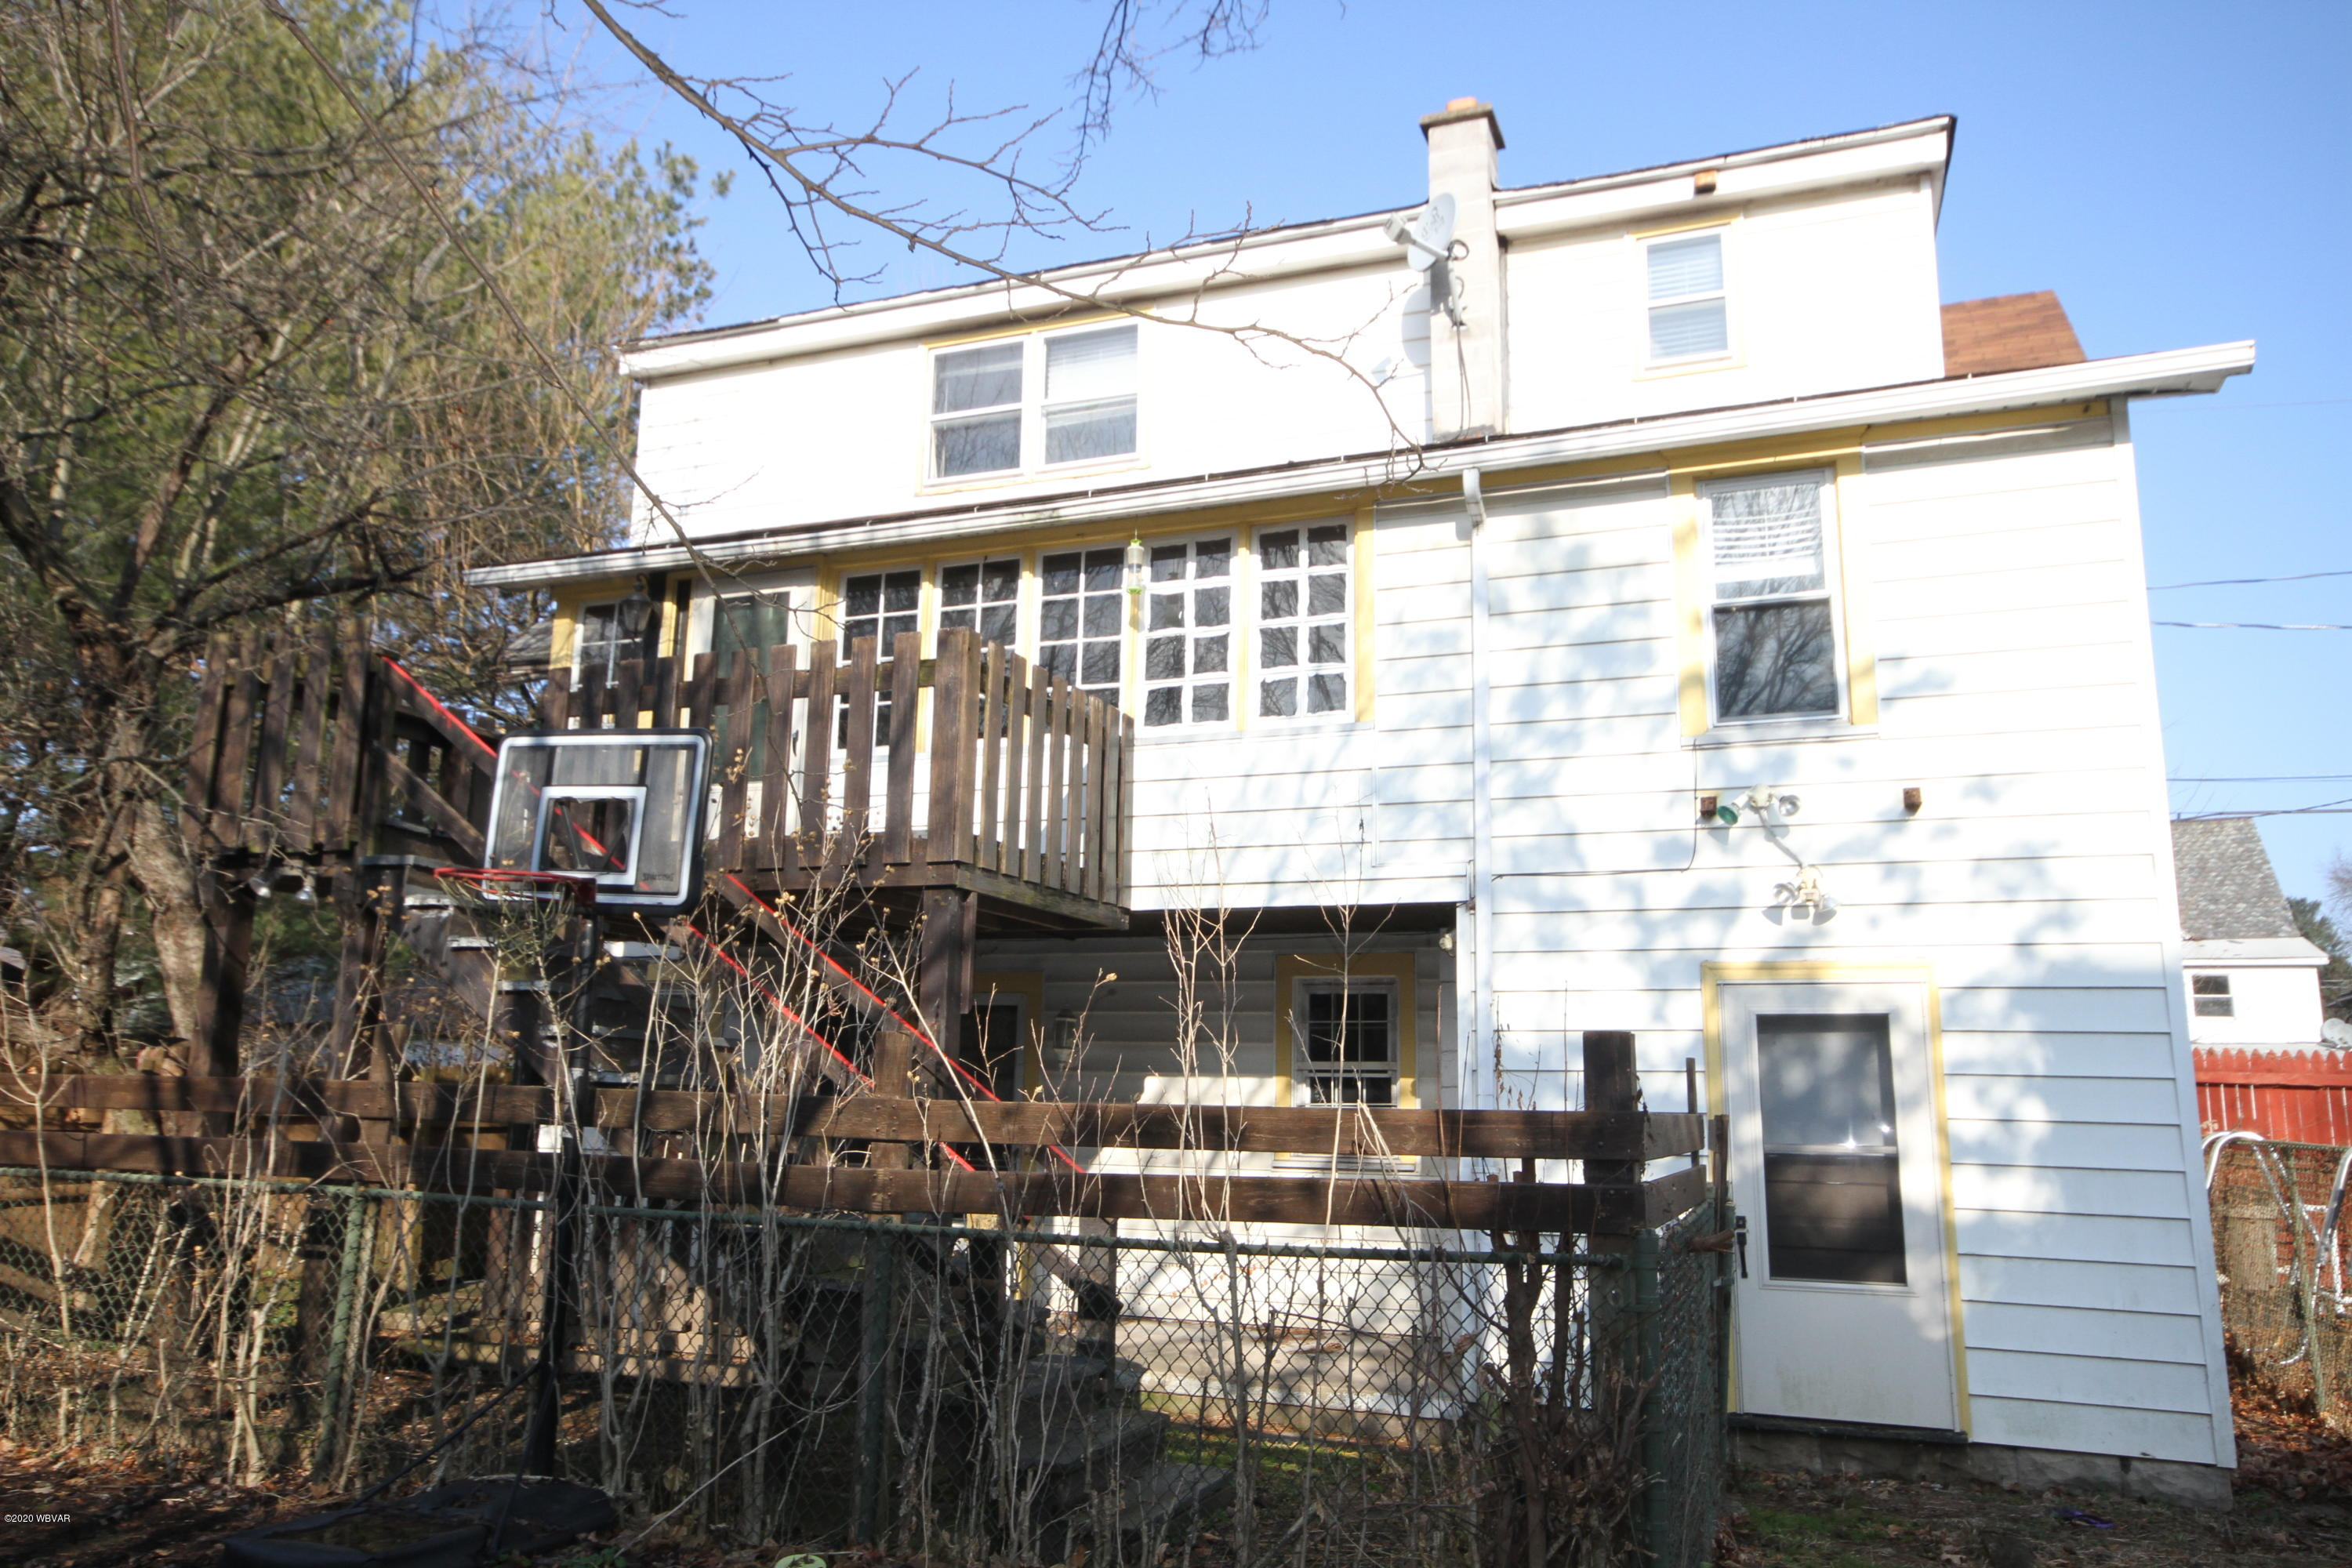 820 1/2 PARK PLACE,Williamsport,PA 17701,3 Bedrooms Bedrooms,2 BathroomsBathrooms,Residential,PARK,WB-89417